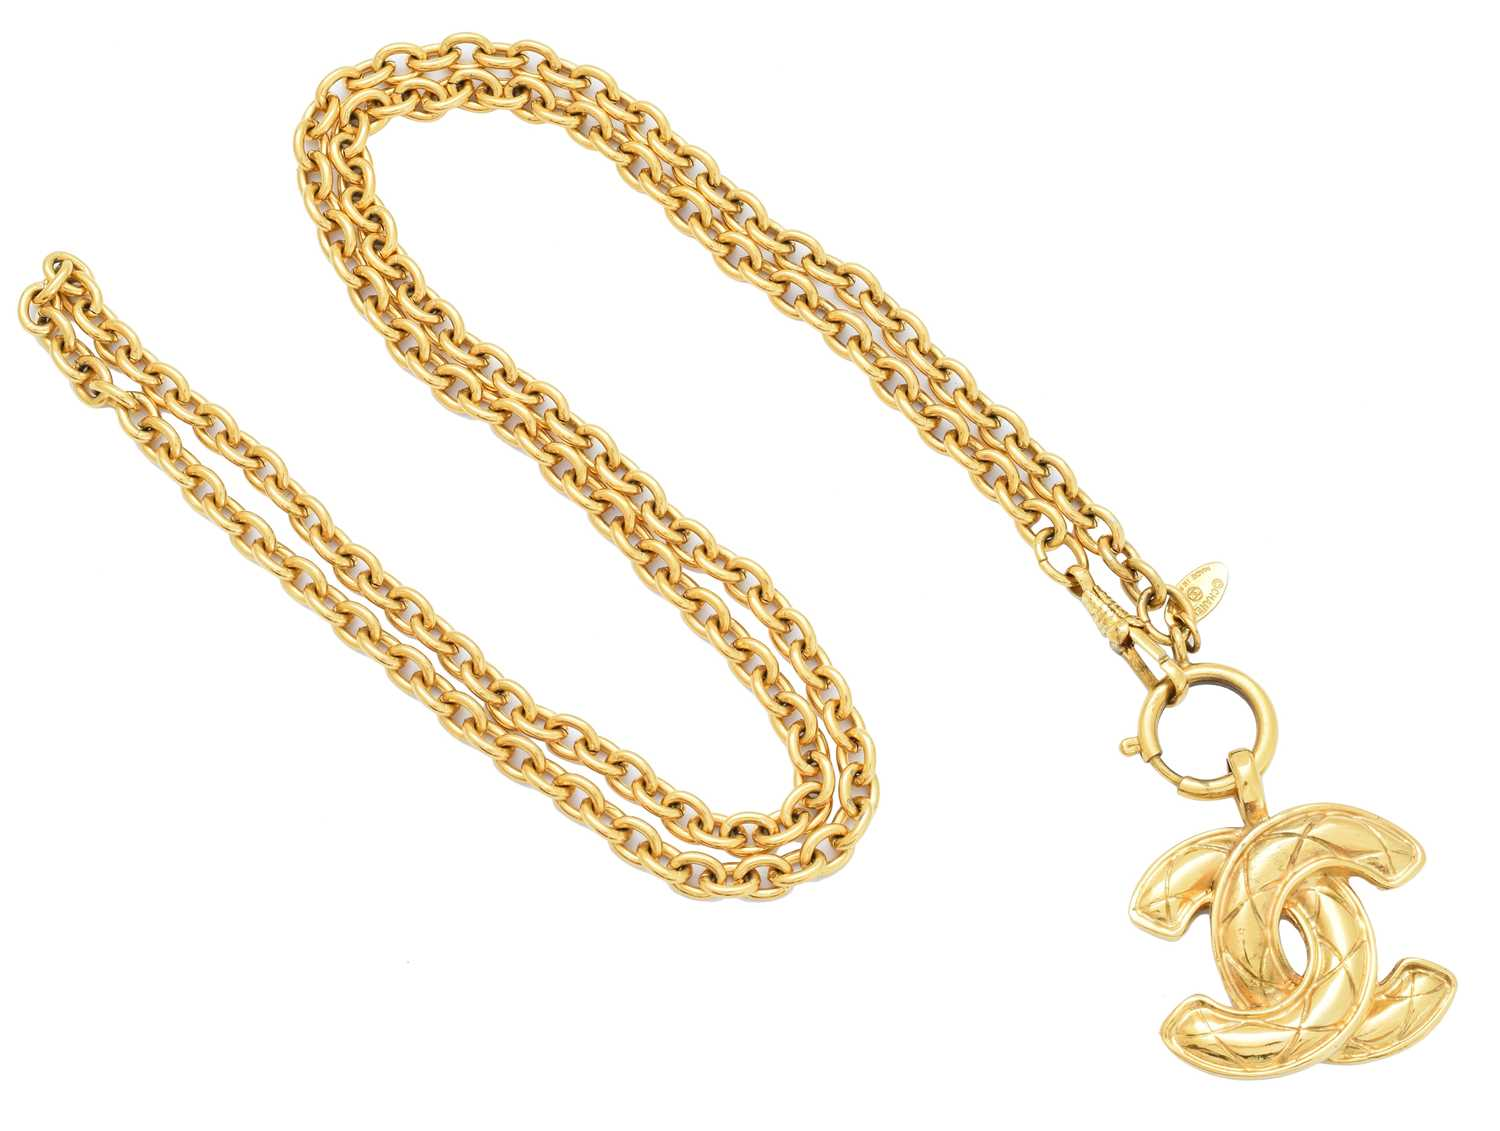 Lot 33-A Chanel pendant necklace